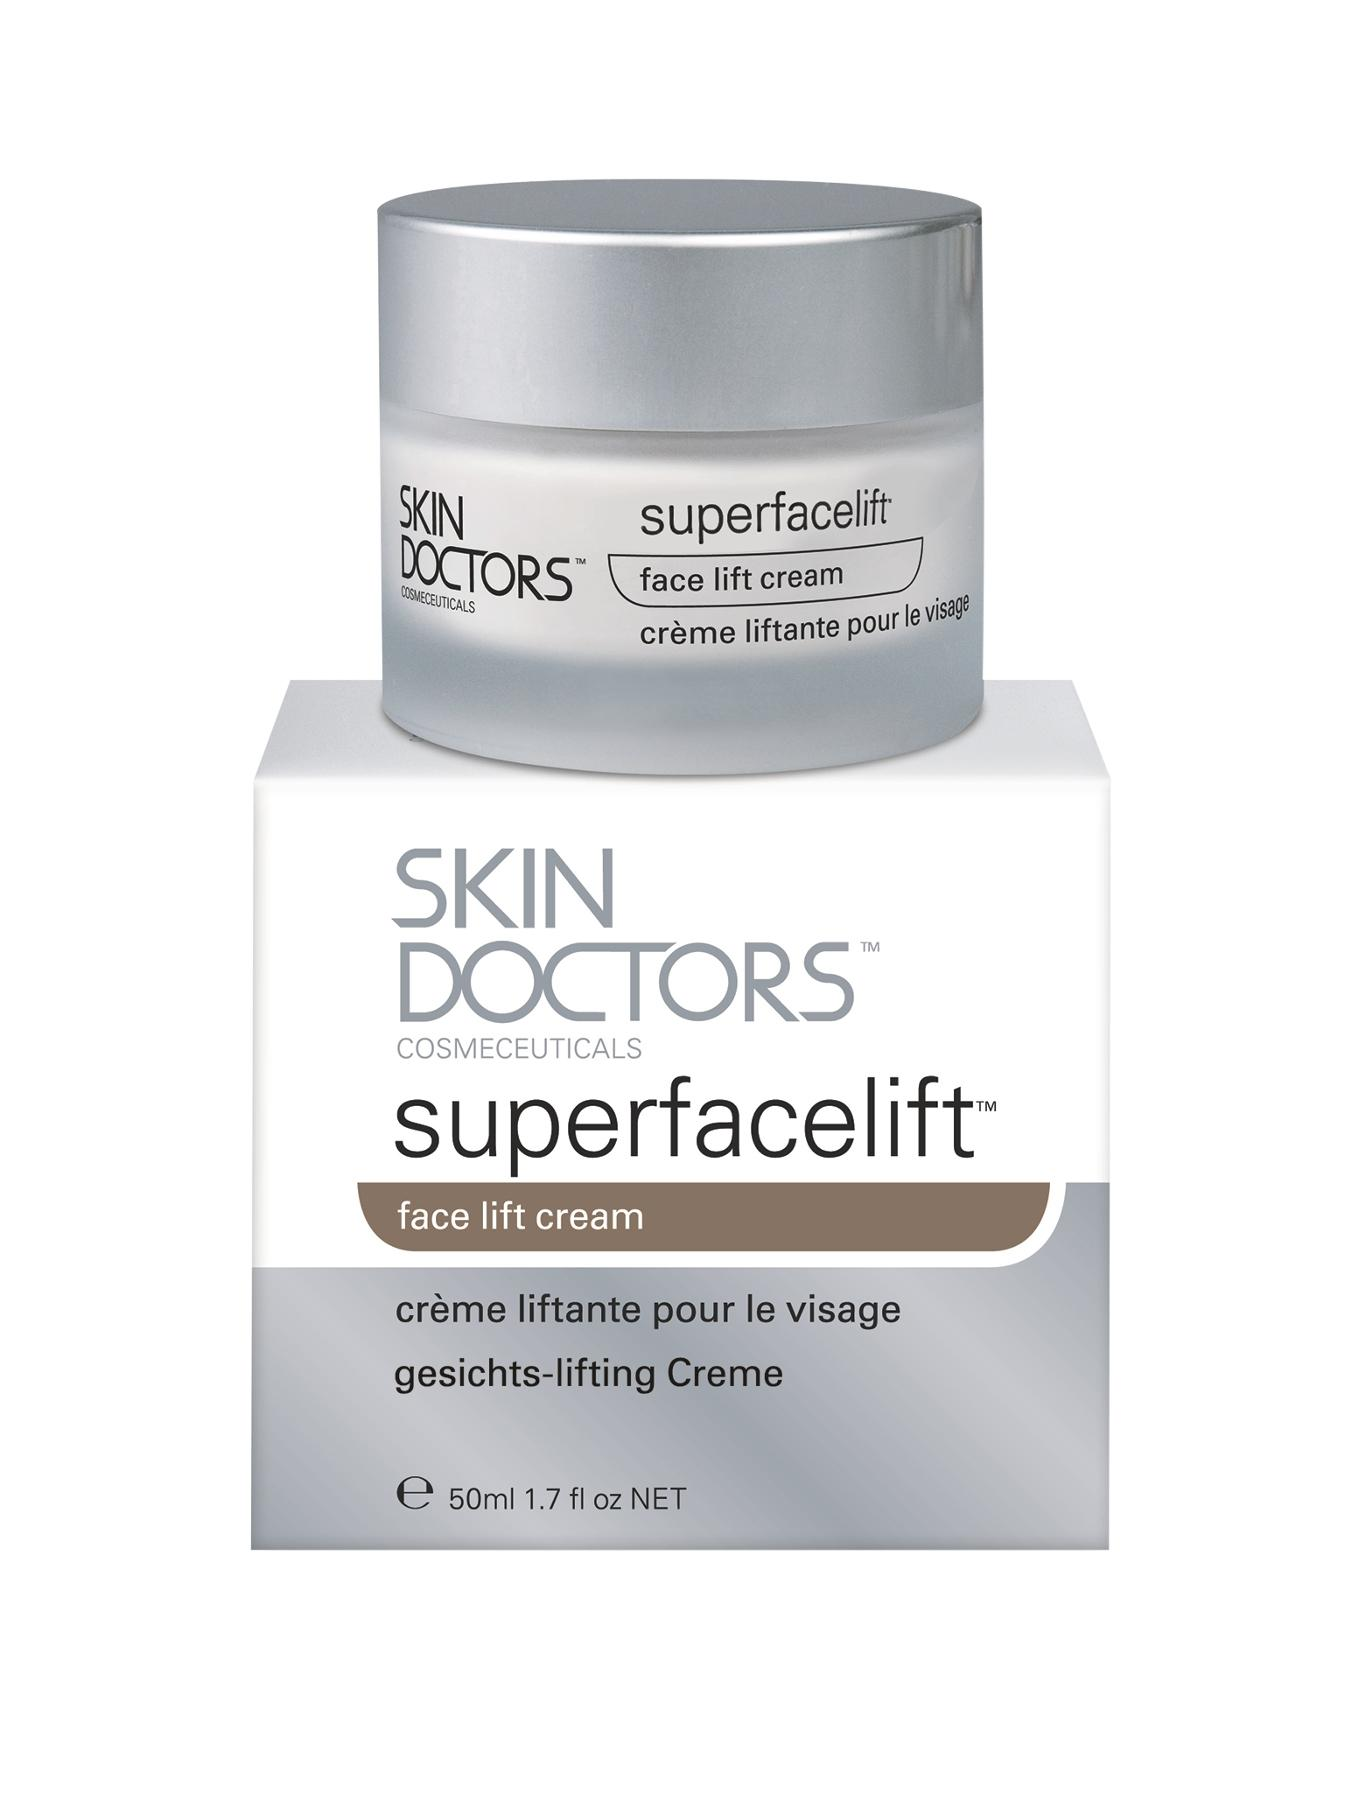 Super Facelift 50 ml